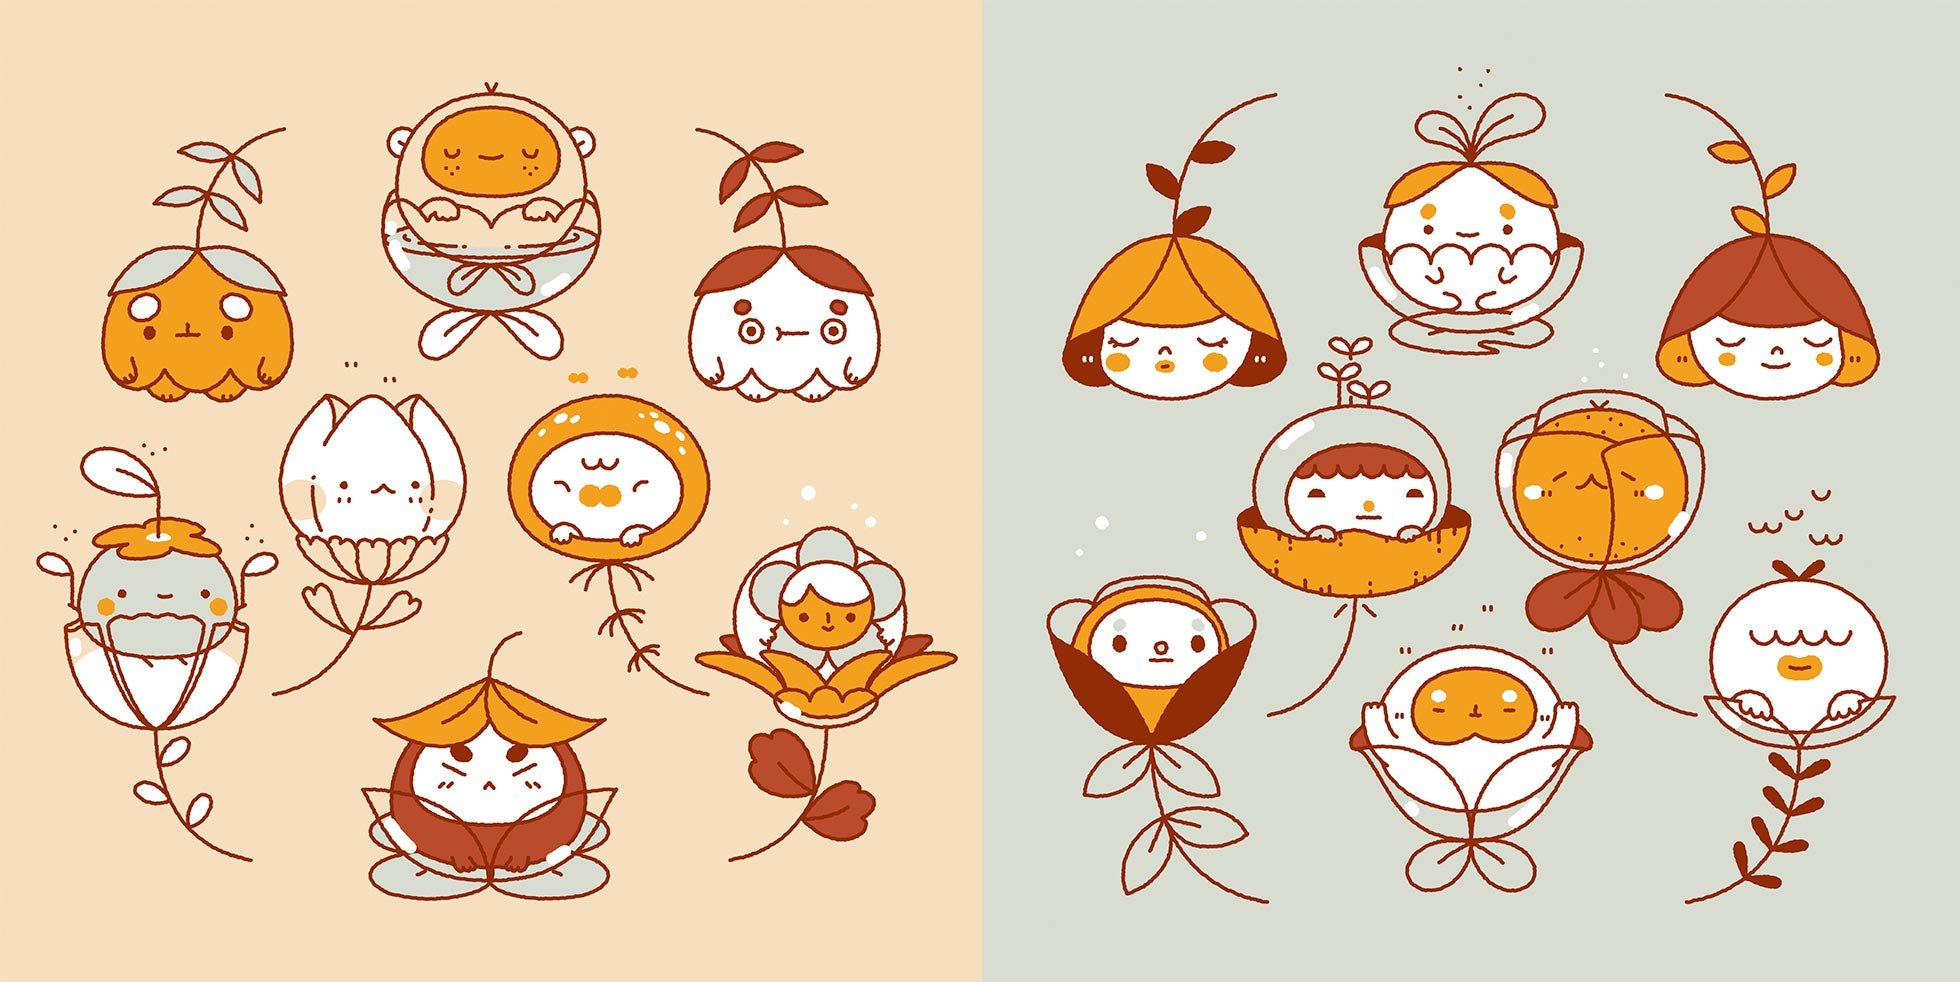 Flower Kids by Steph Fung/Mochichito